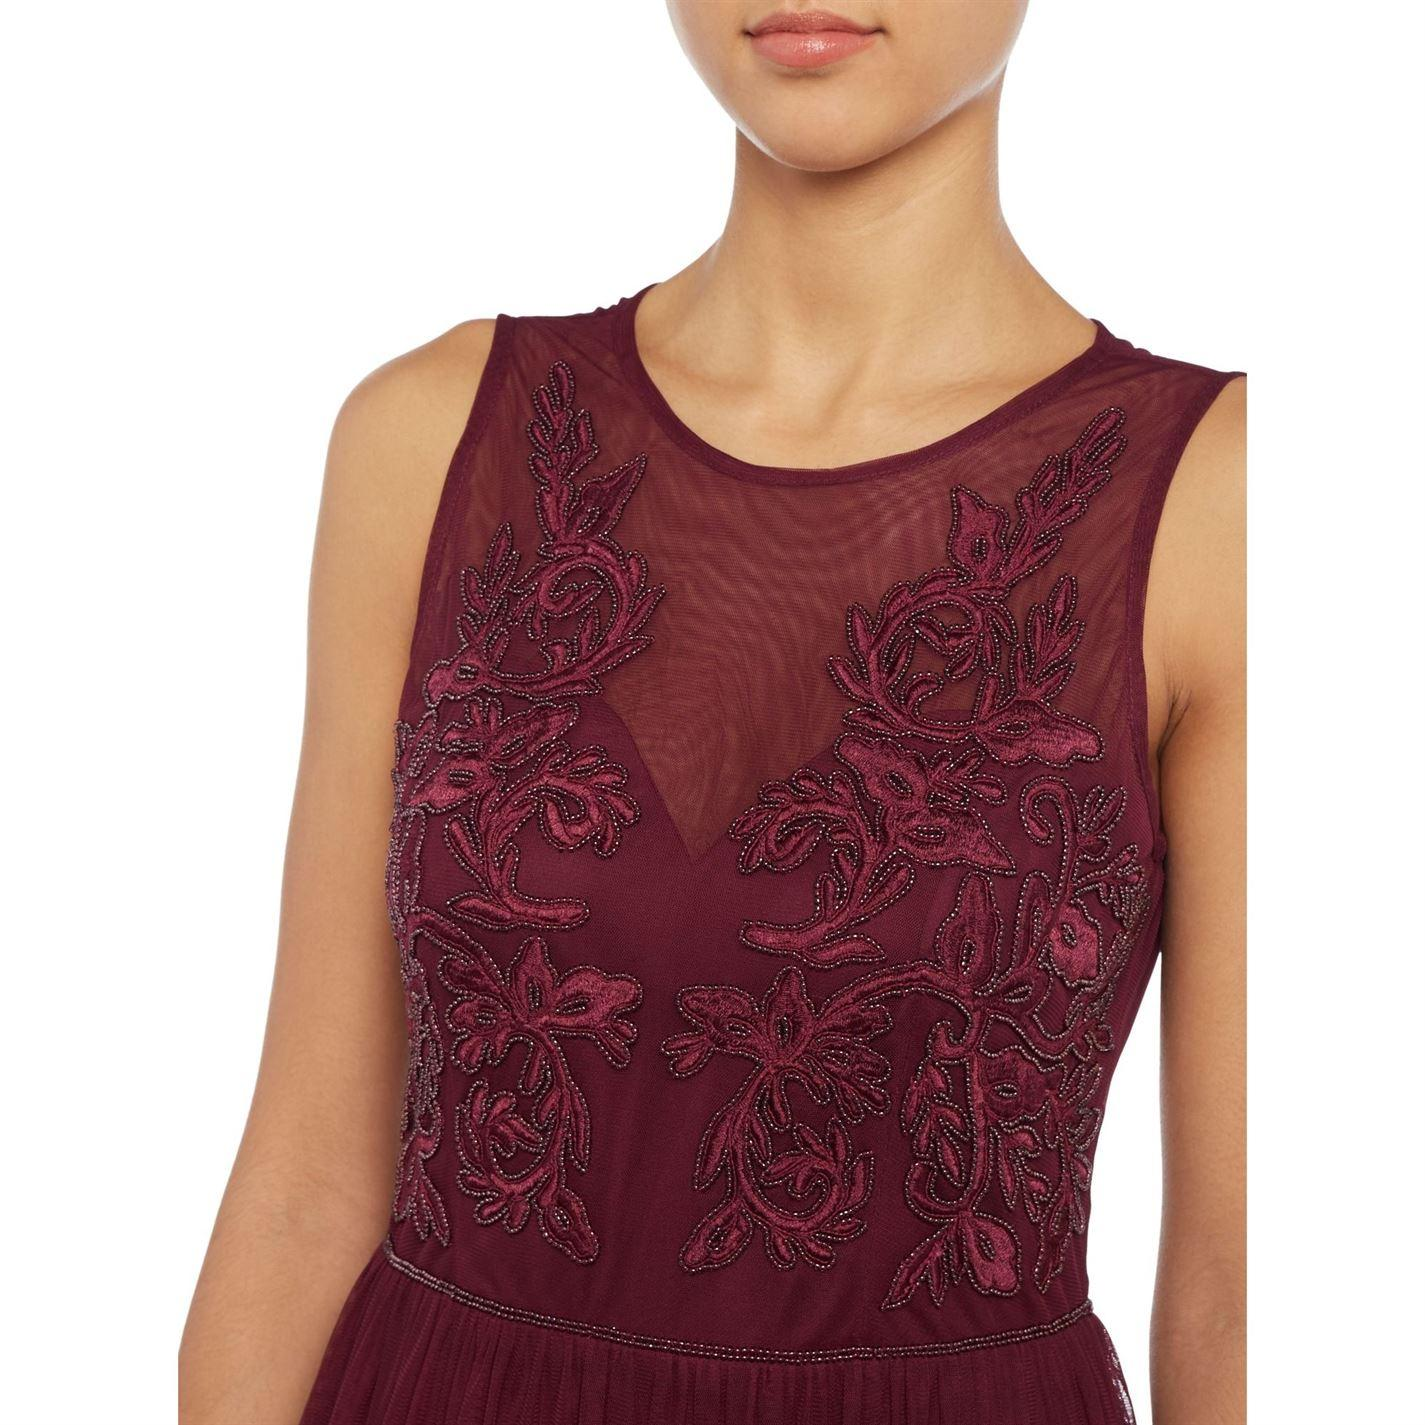 Adrianna Papell Sleeveless Lace Mesh Top Gown Maxi Dress in Red